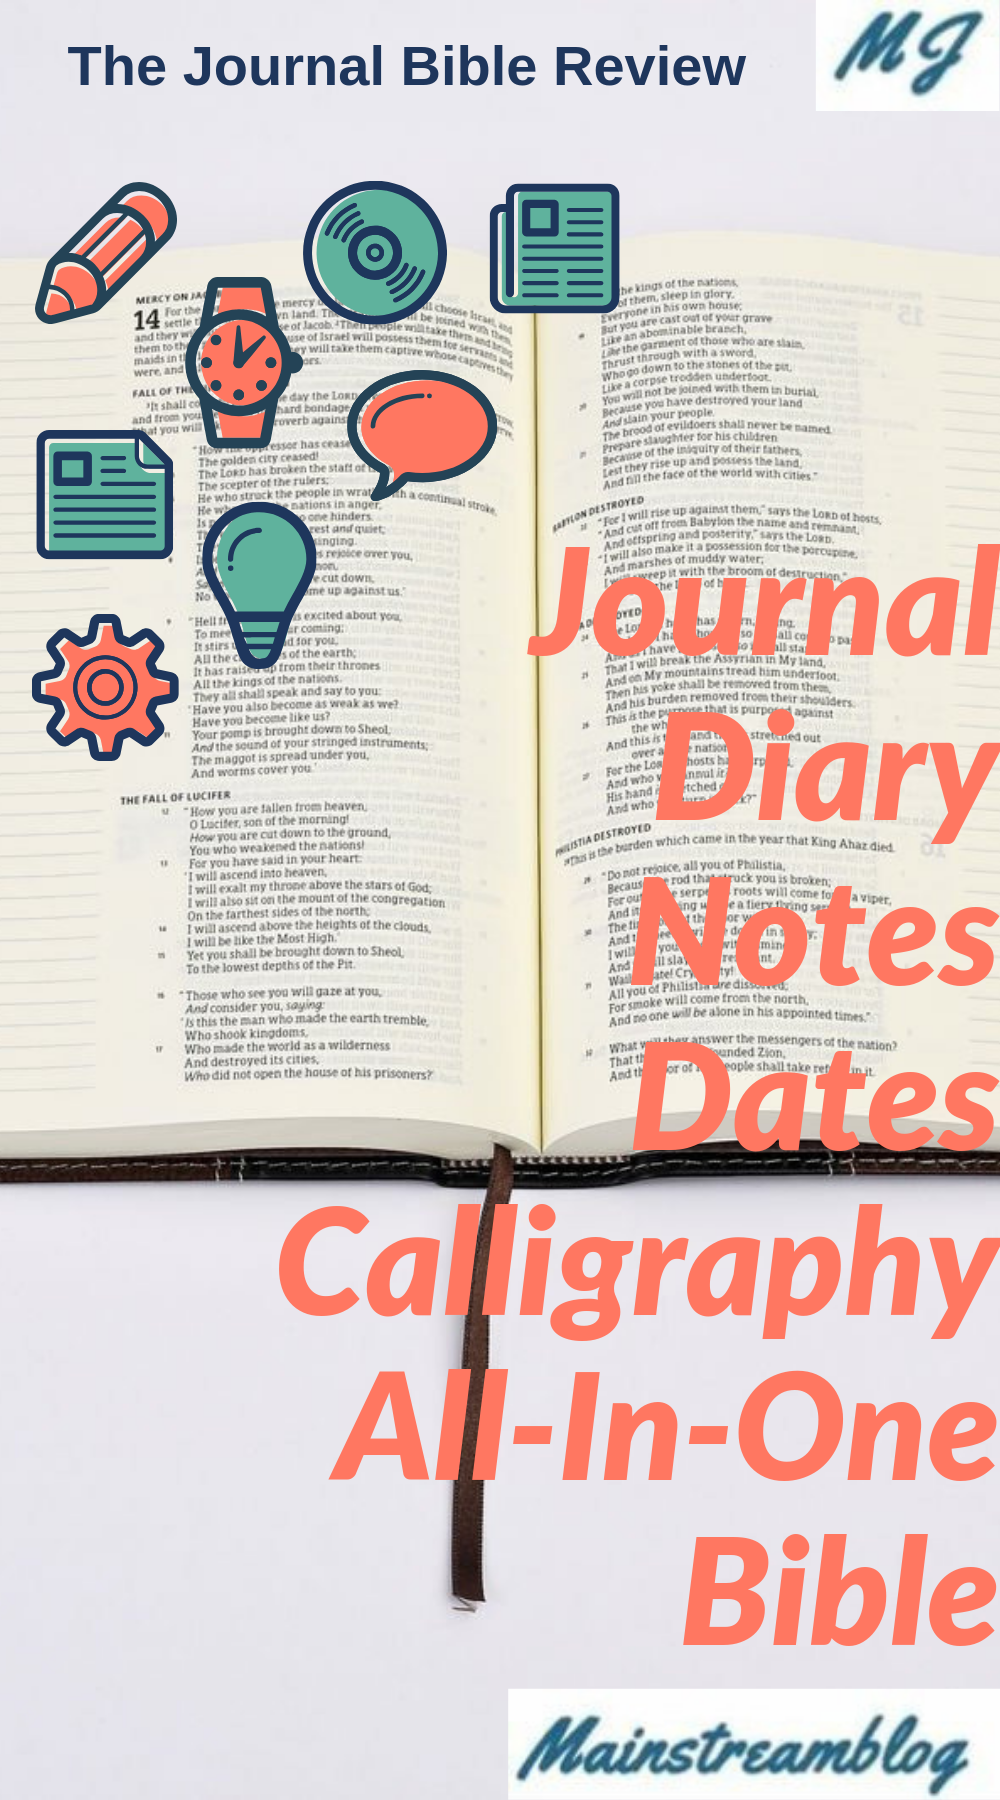 Need a Bible with margins? Check out the Journal Bible ...